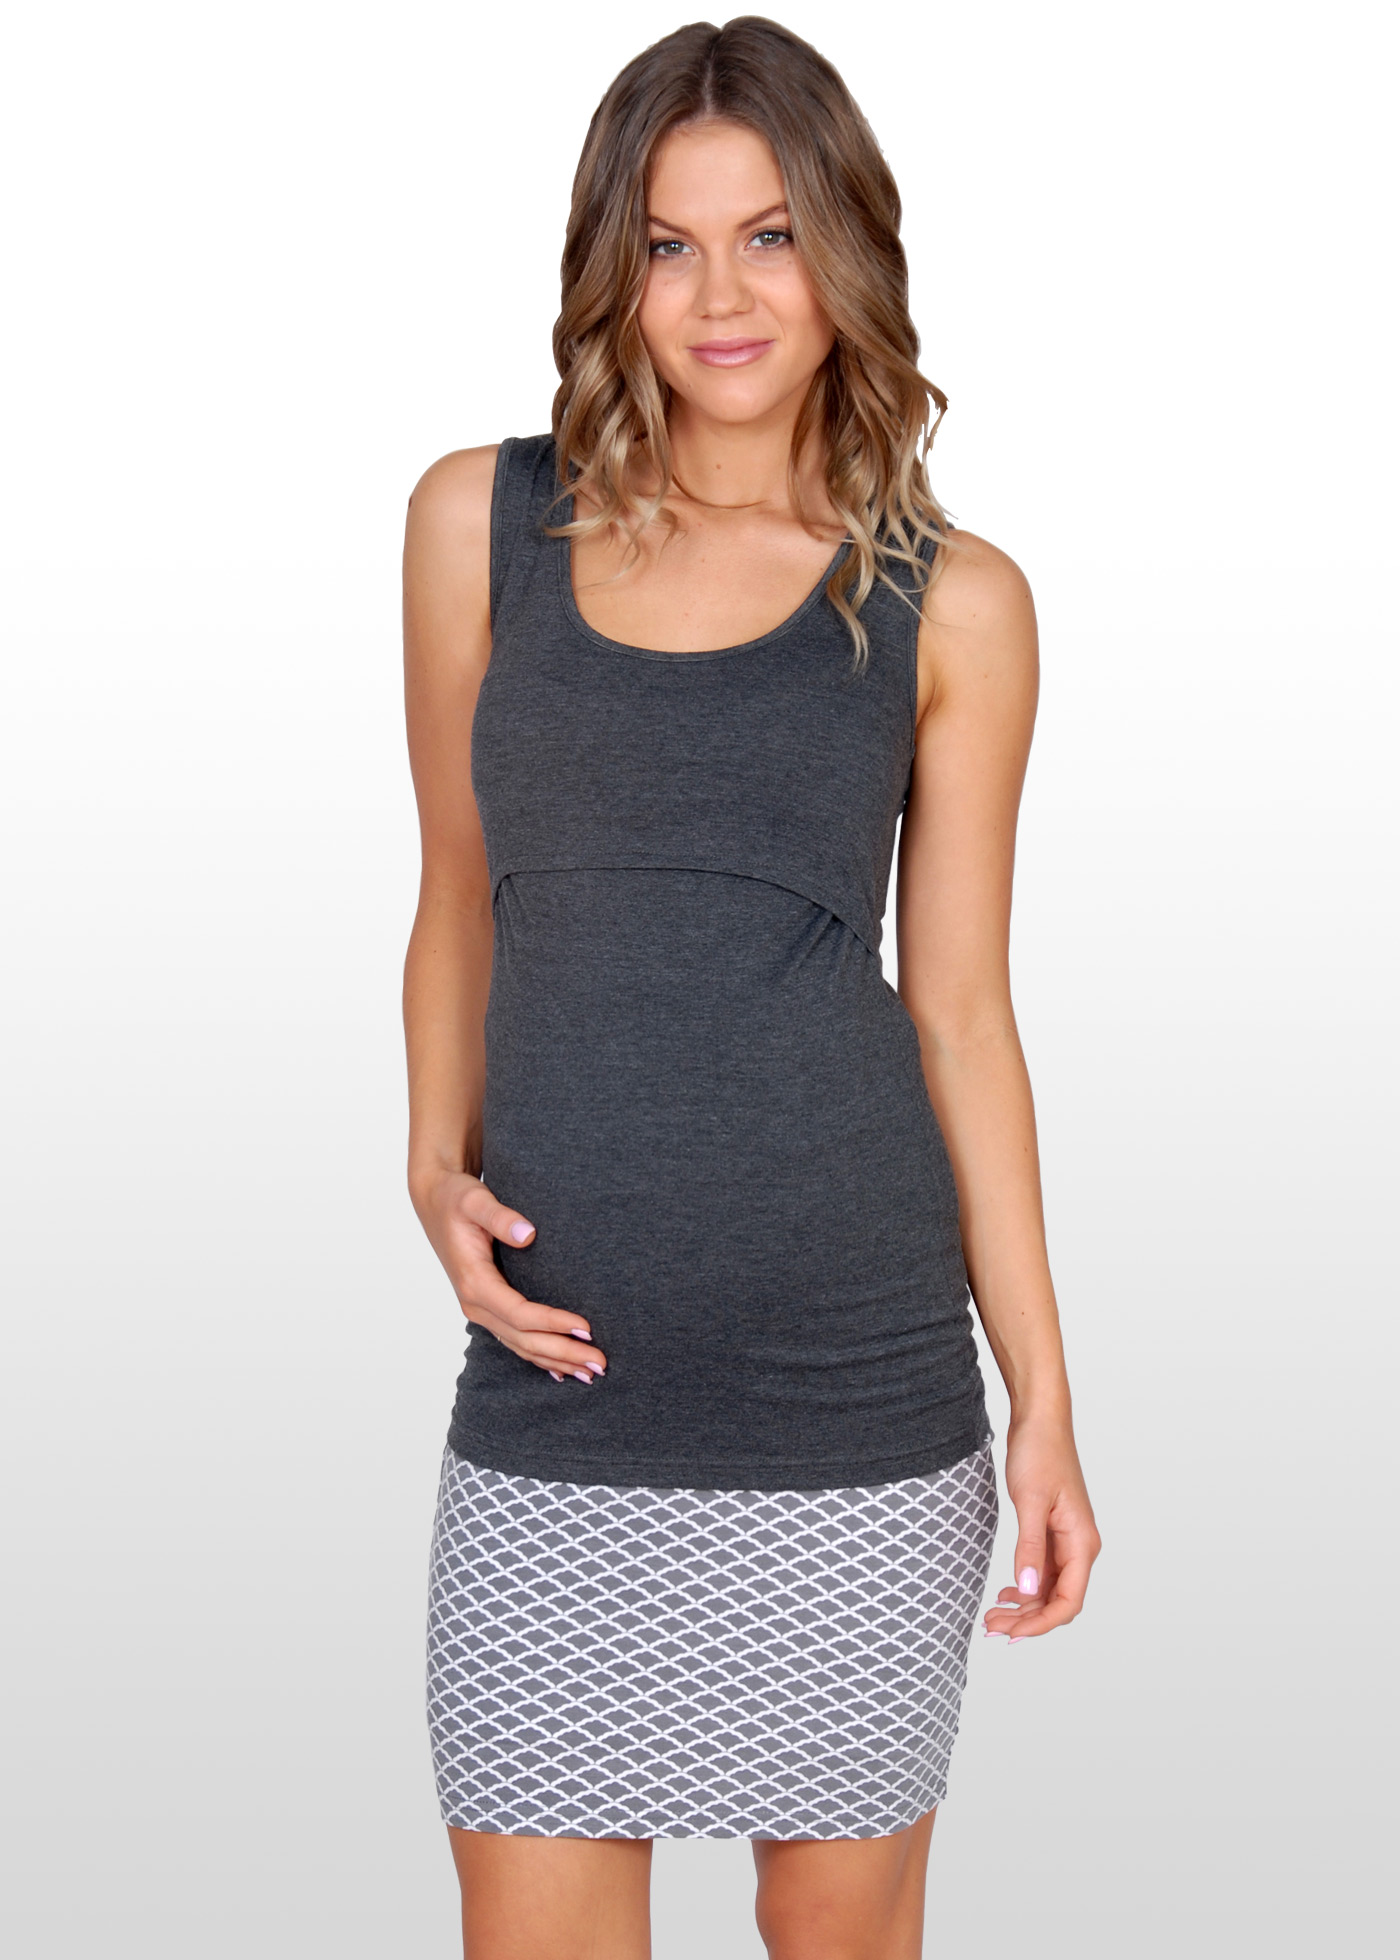 The cutest maternity skirts online the maternity sale blog scallop print maternity skirt ombrellifo Image collections